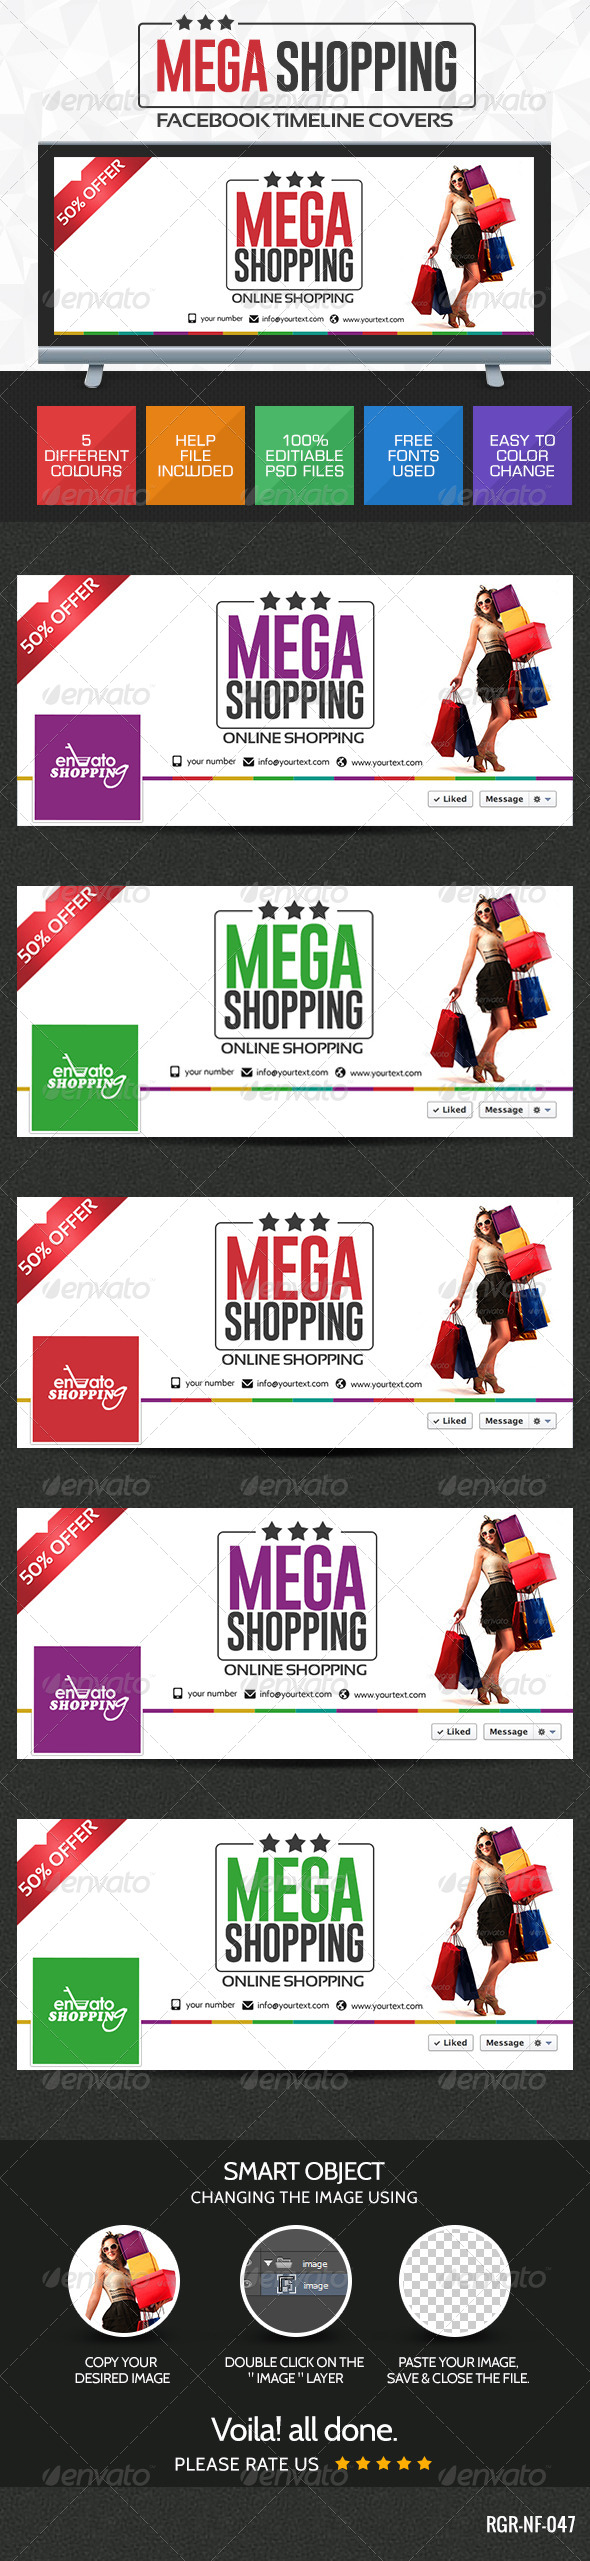 GraphicRiver Shopping Deals Facebook Cover 8387598